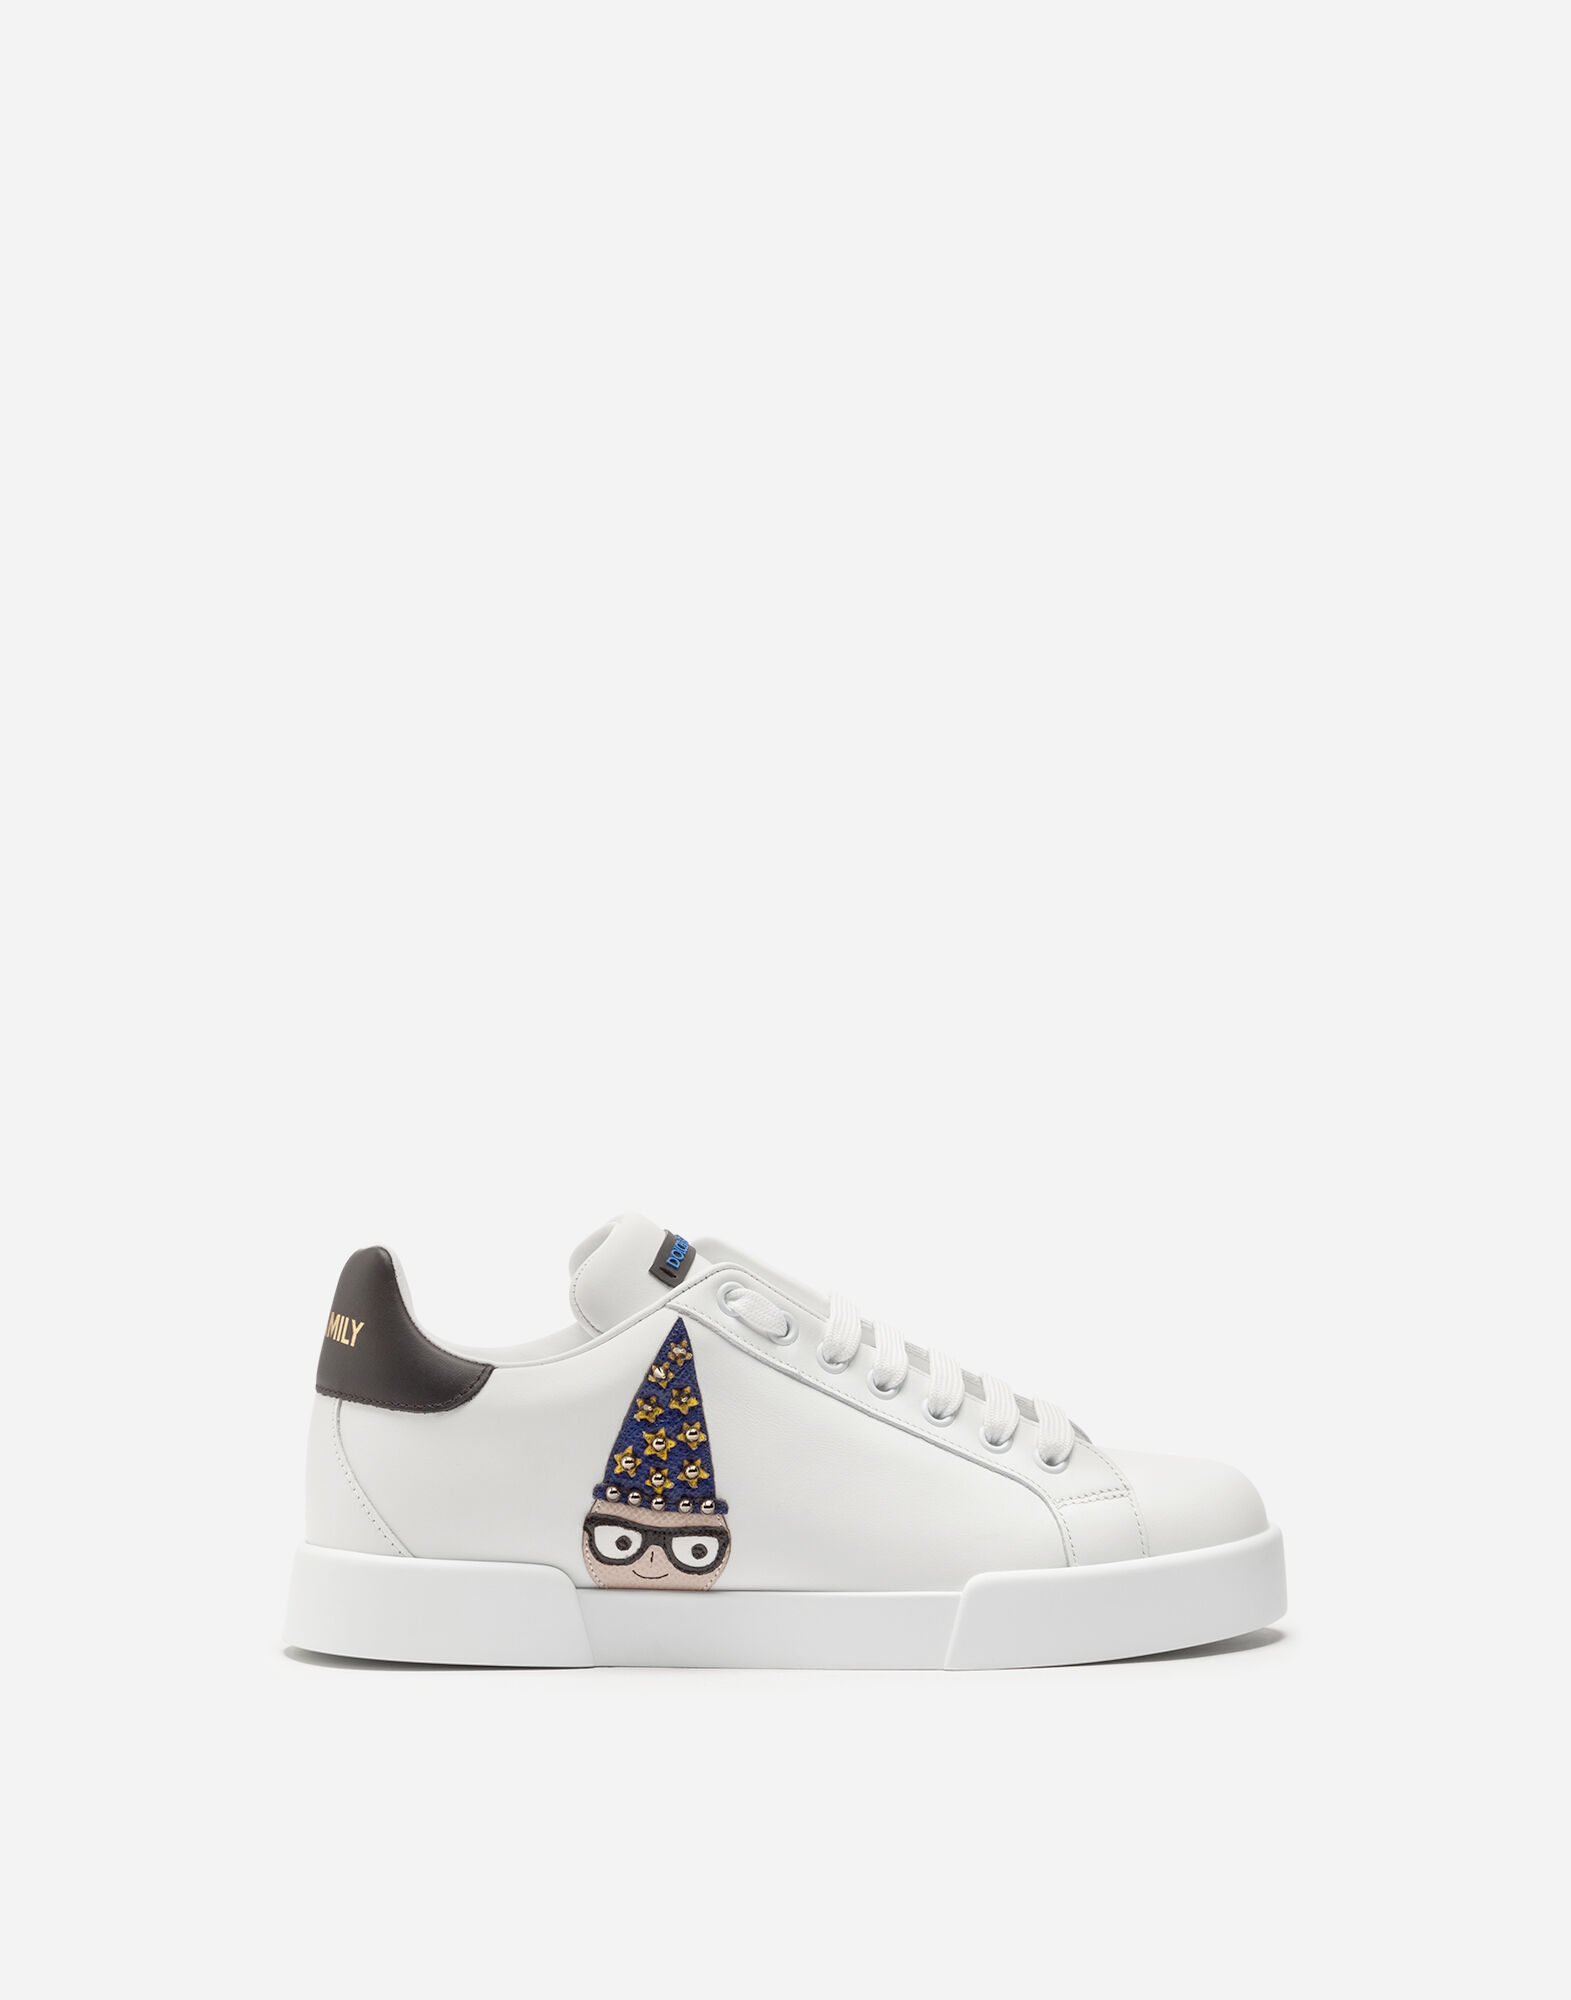 PORTOFINO SNEAKERS IN NAPPA CALFSKIN WITH DESIGNERS' PATCHES